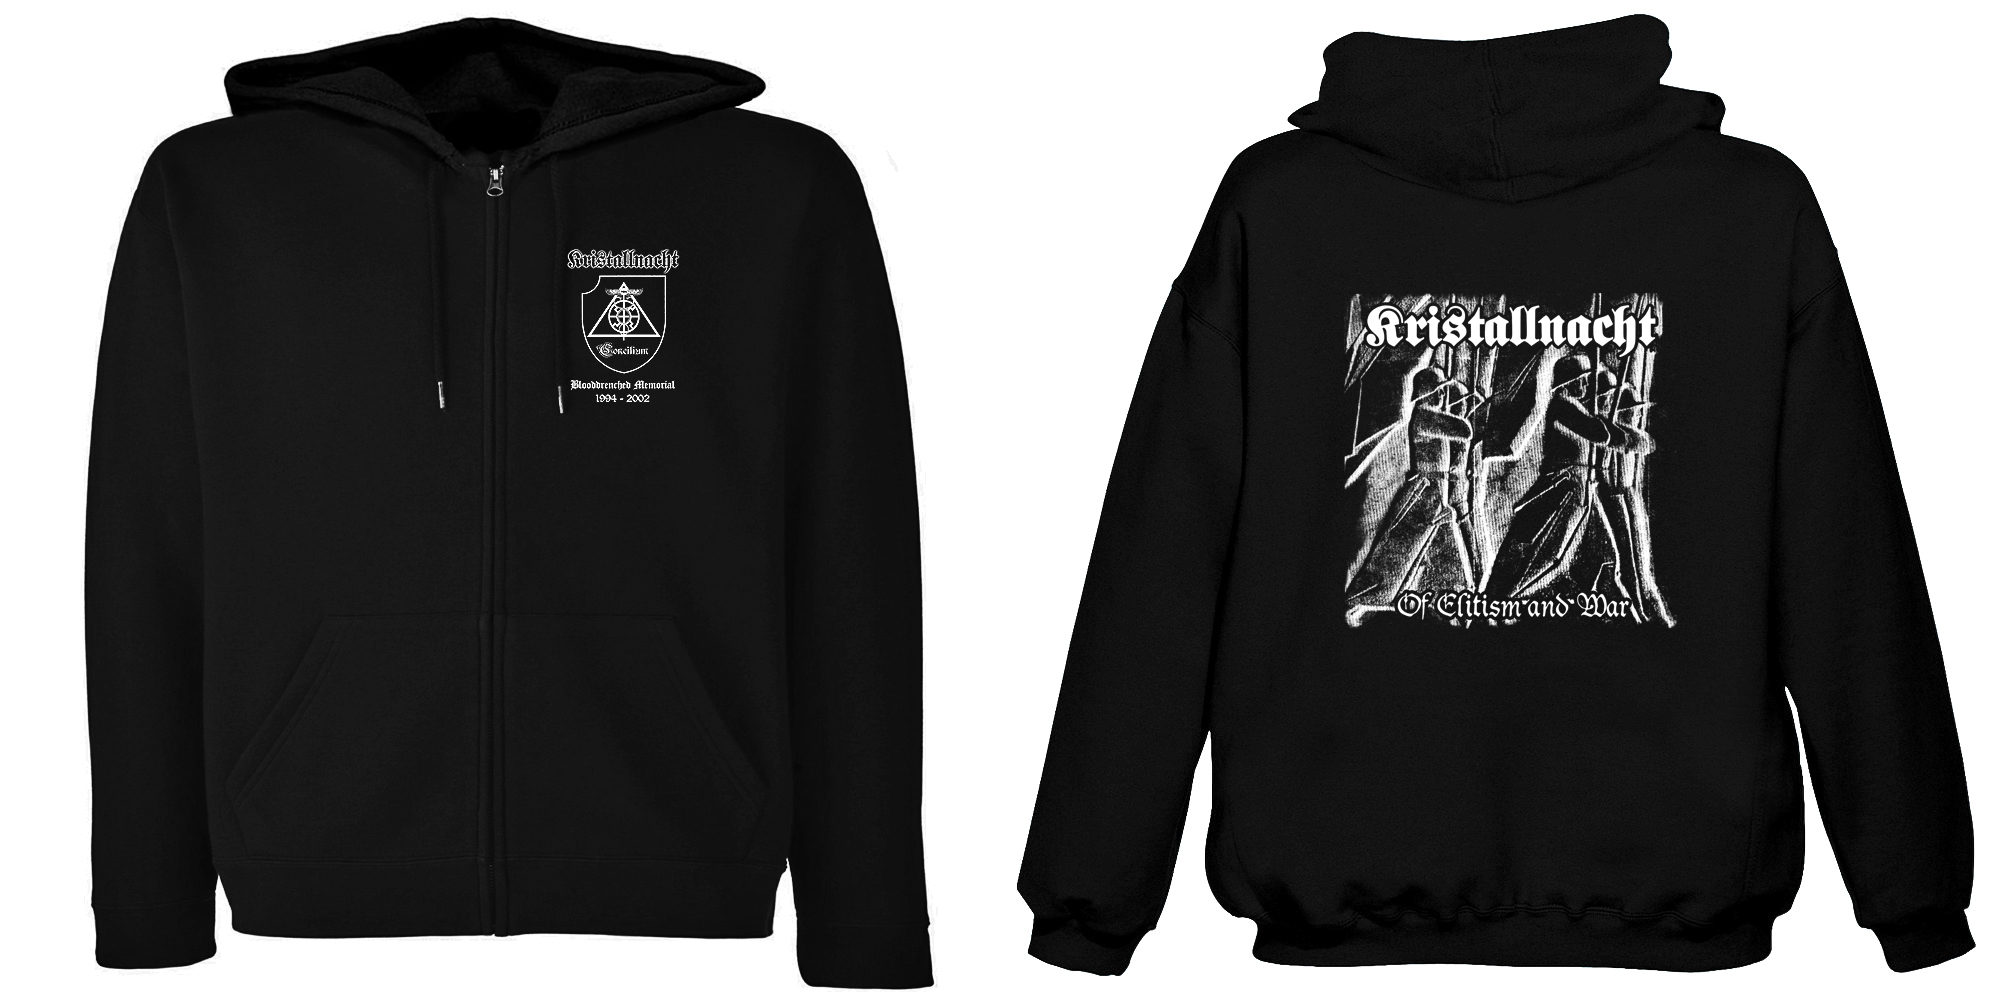 Kristallnacht-Of Elitism And War (Hooded Zipper)